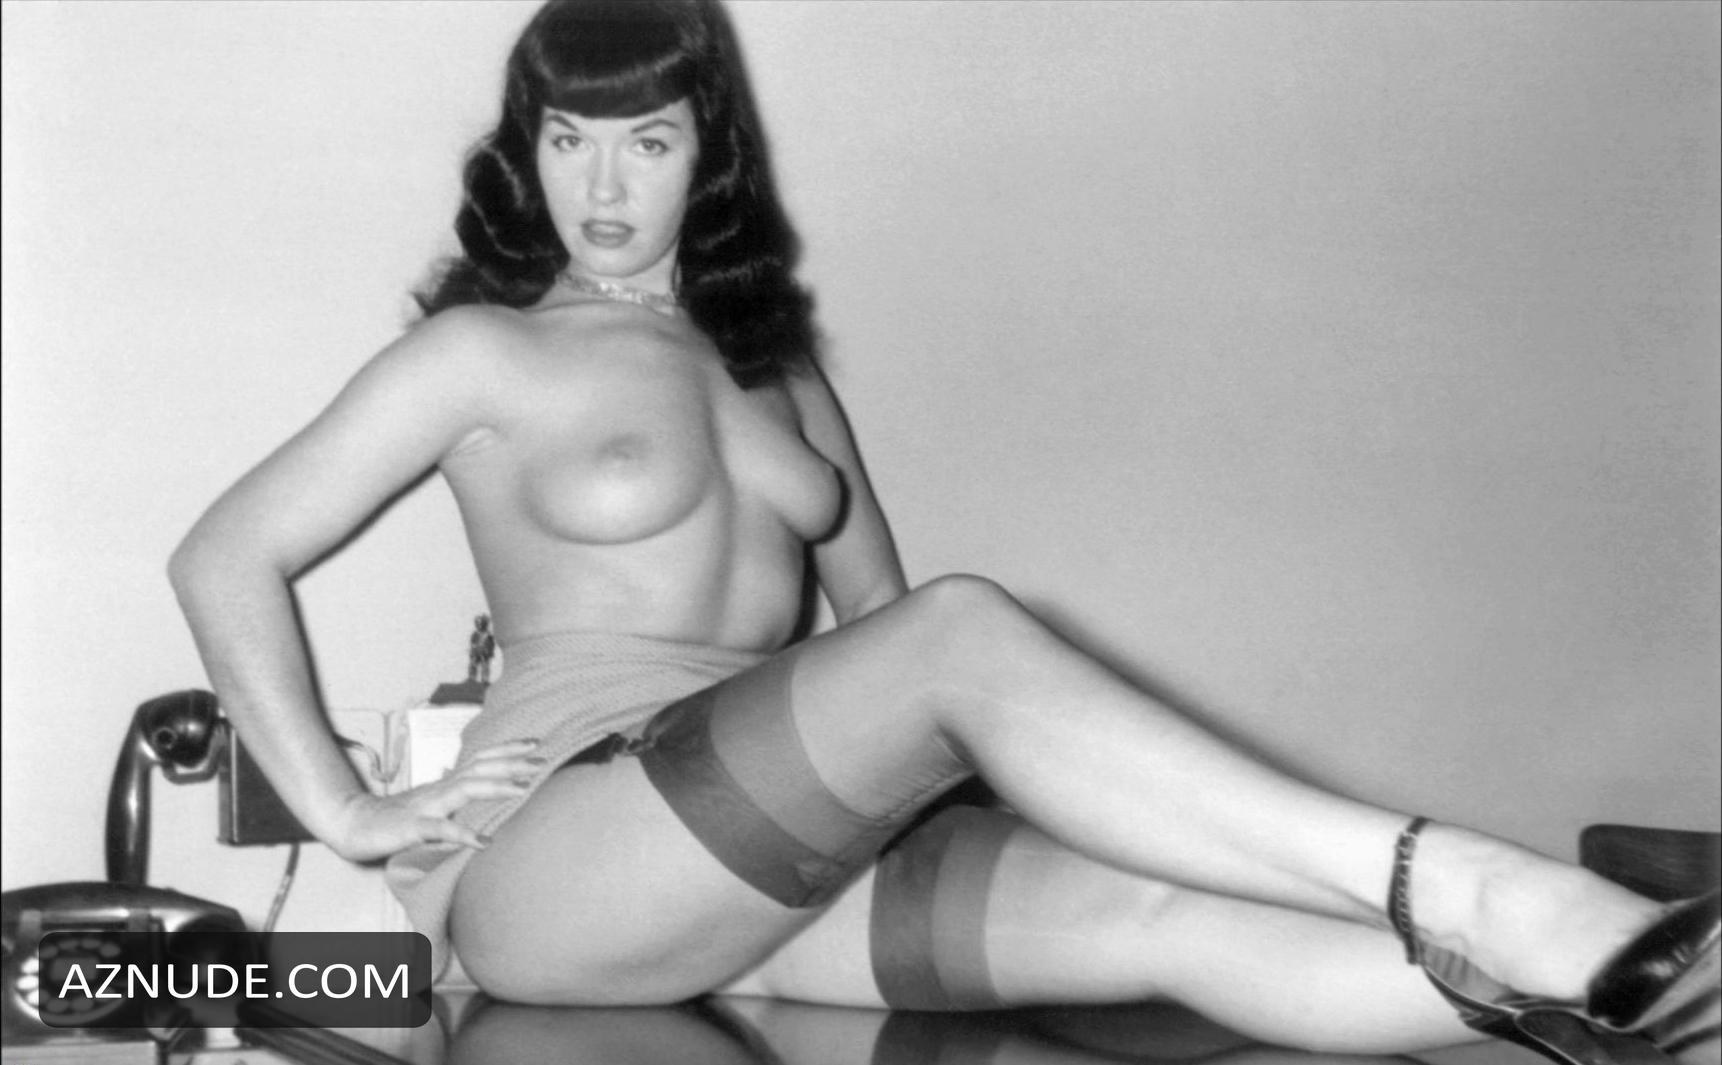 from Anderson nude pictures of bettie page